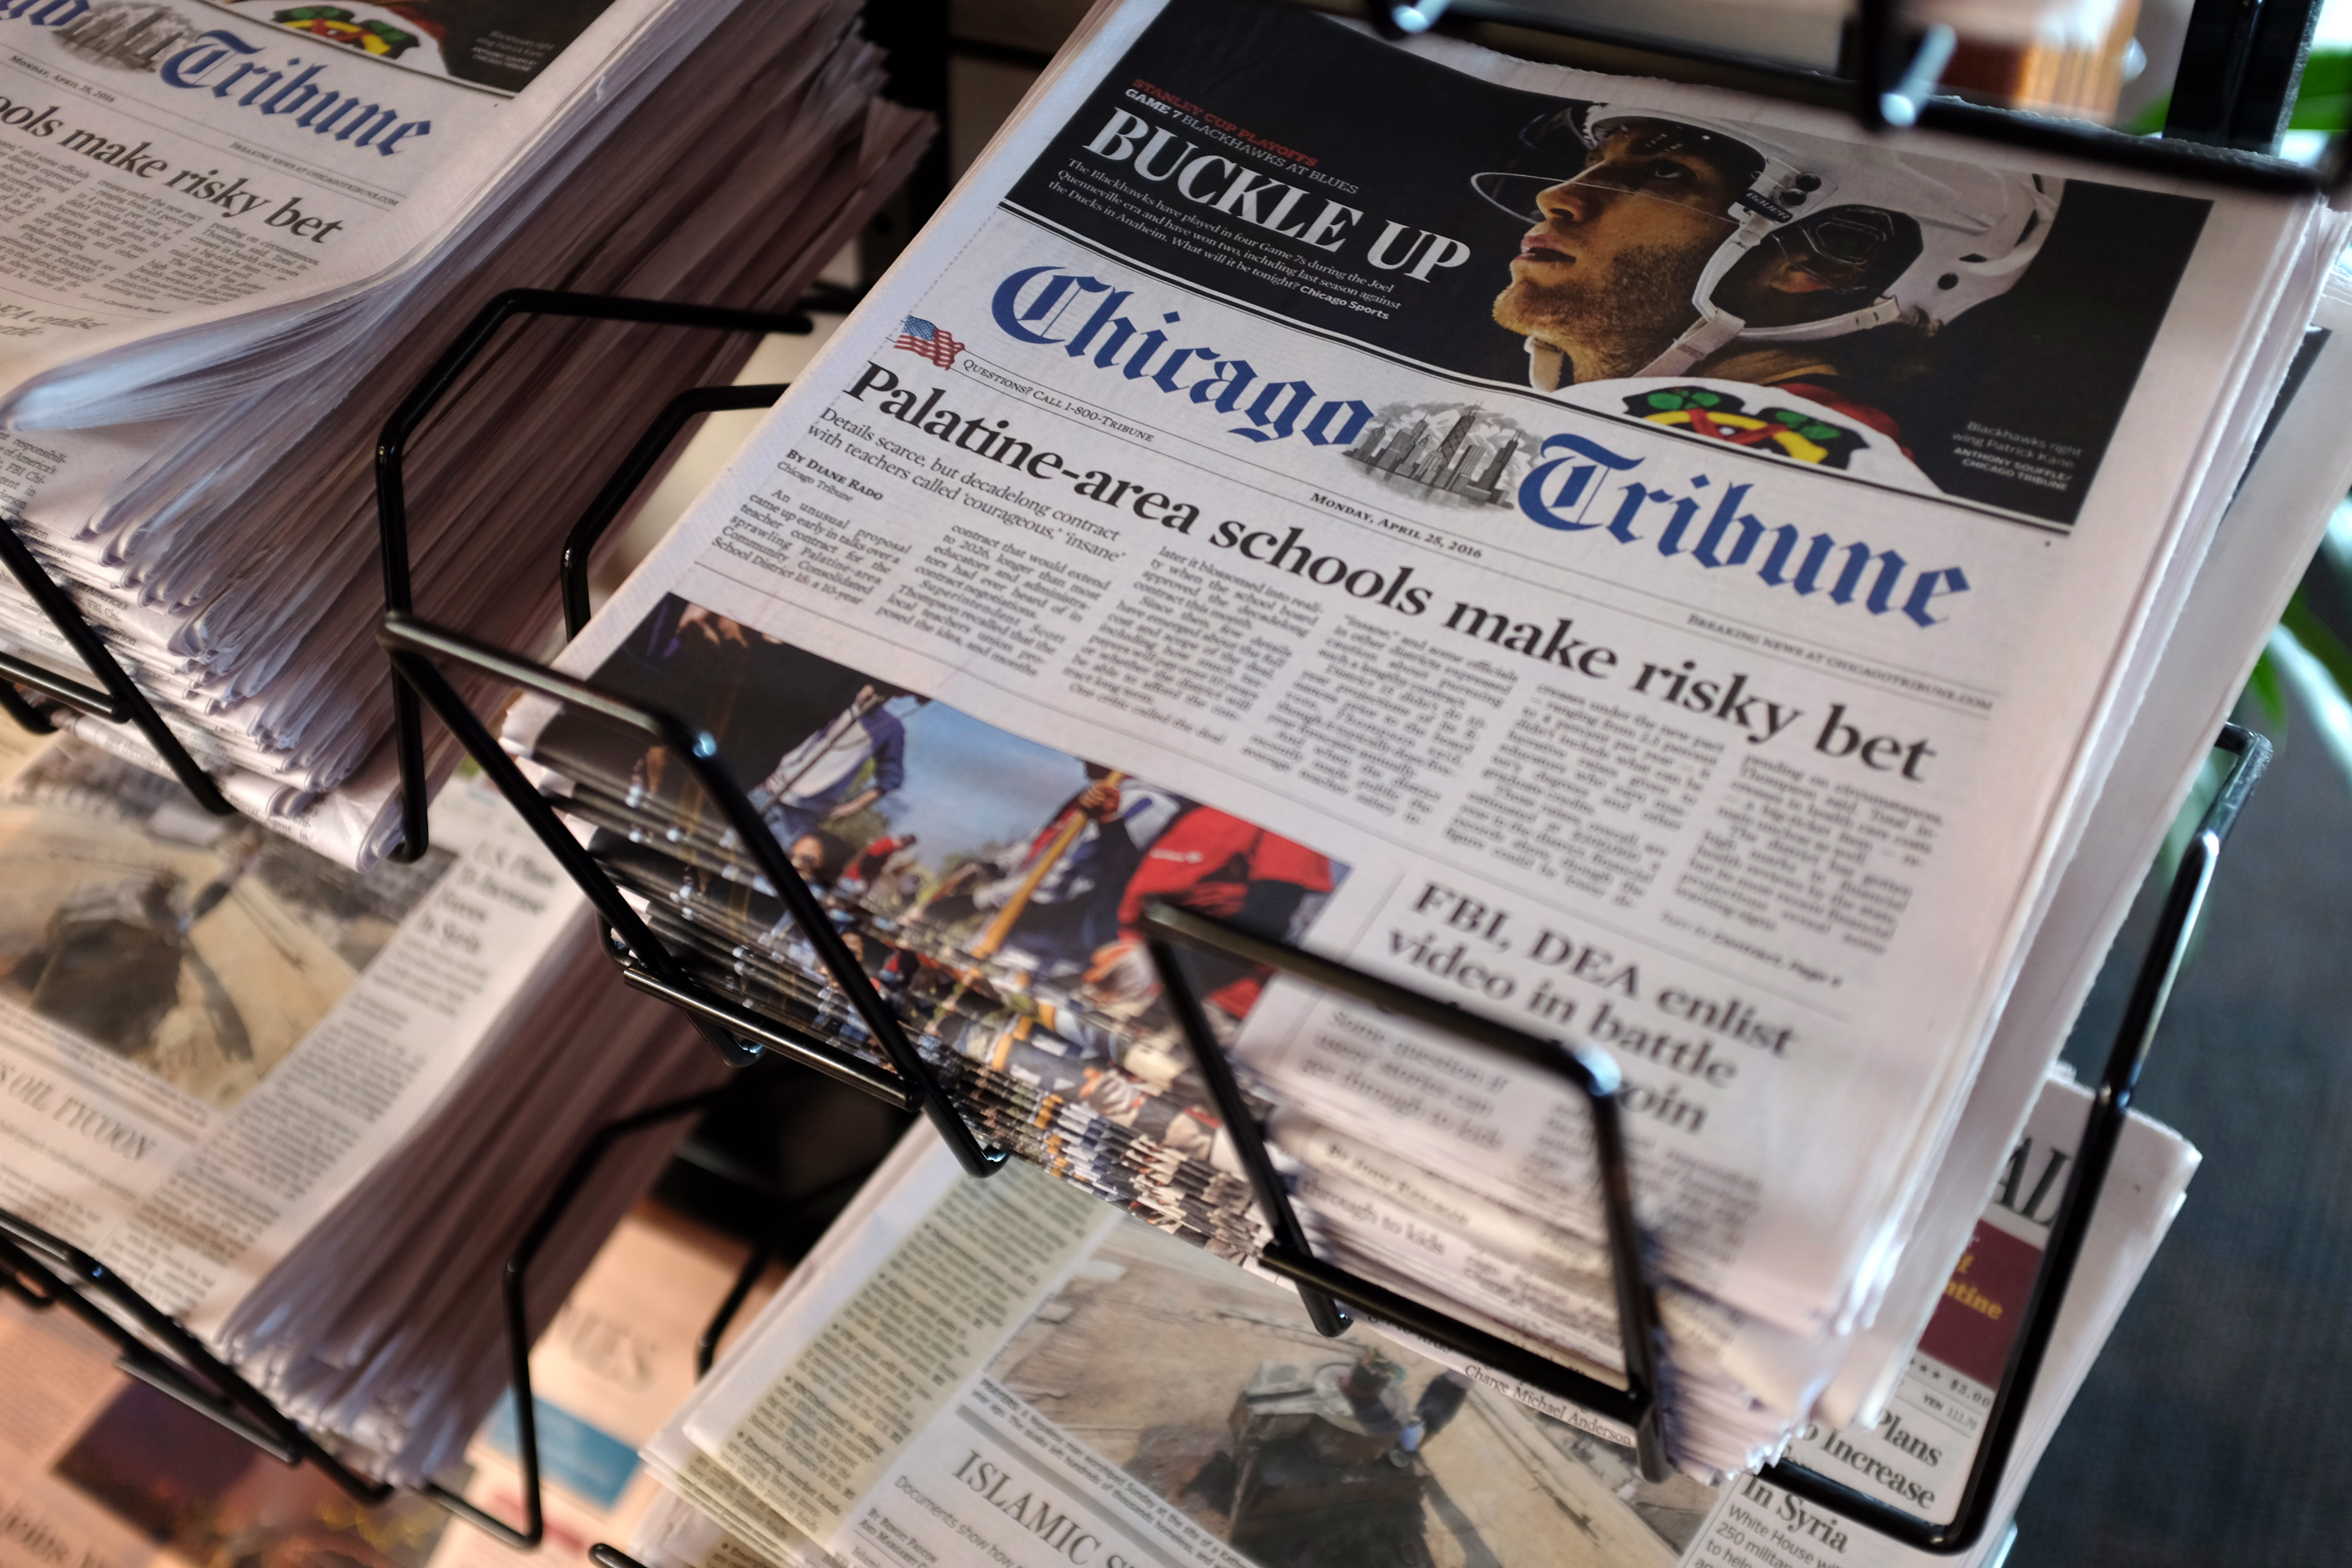 Chicago Tribune and other newspapers are displayed at Chicago's O'Hare International Airport,